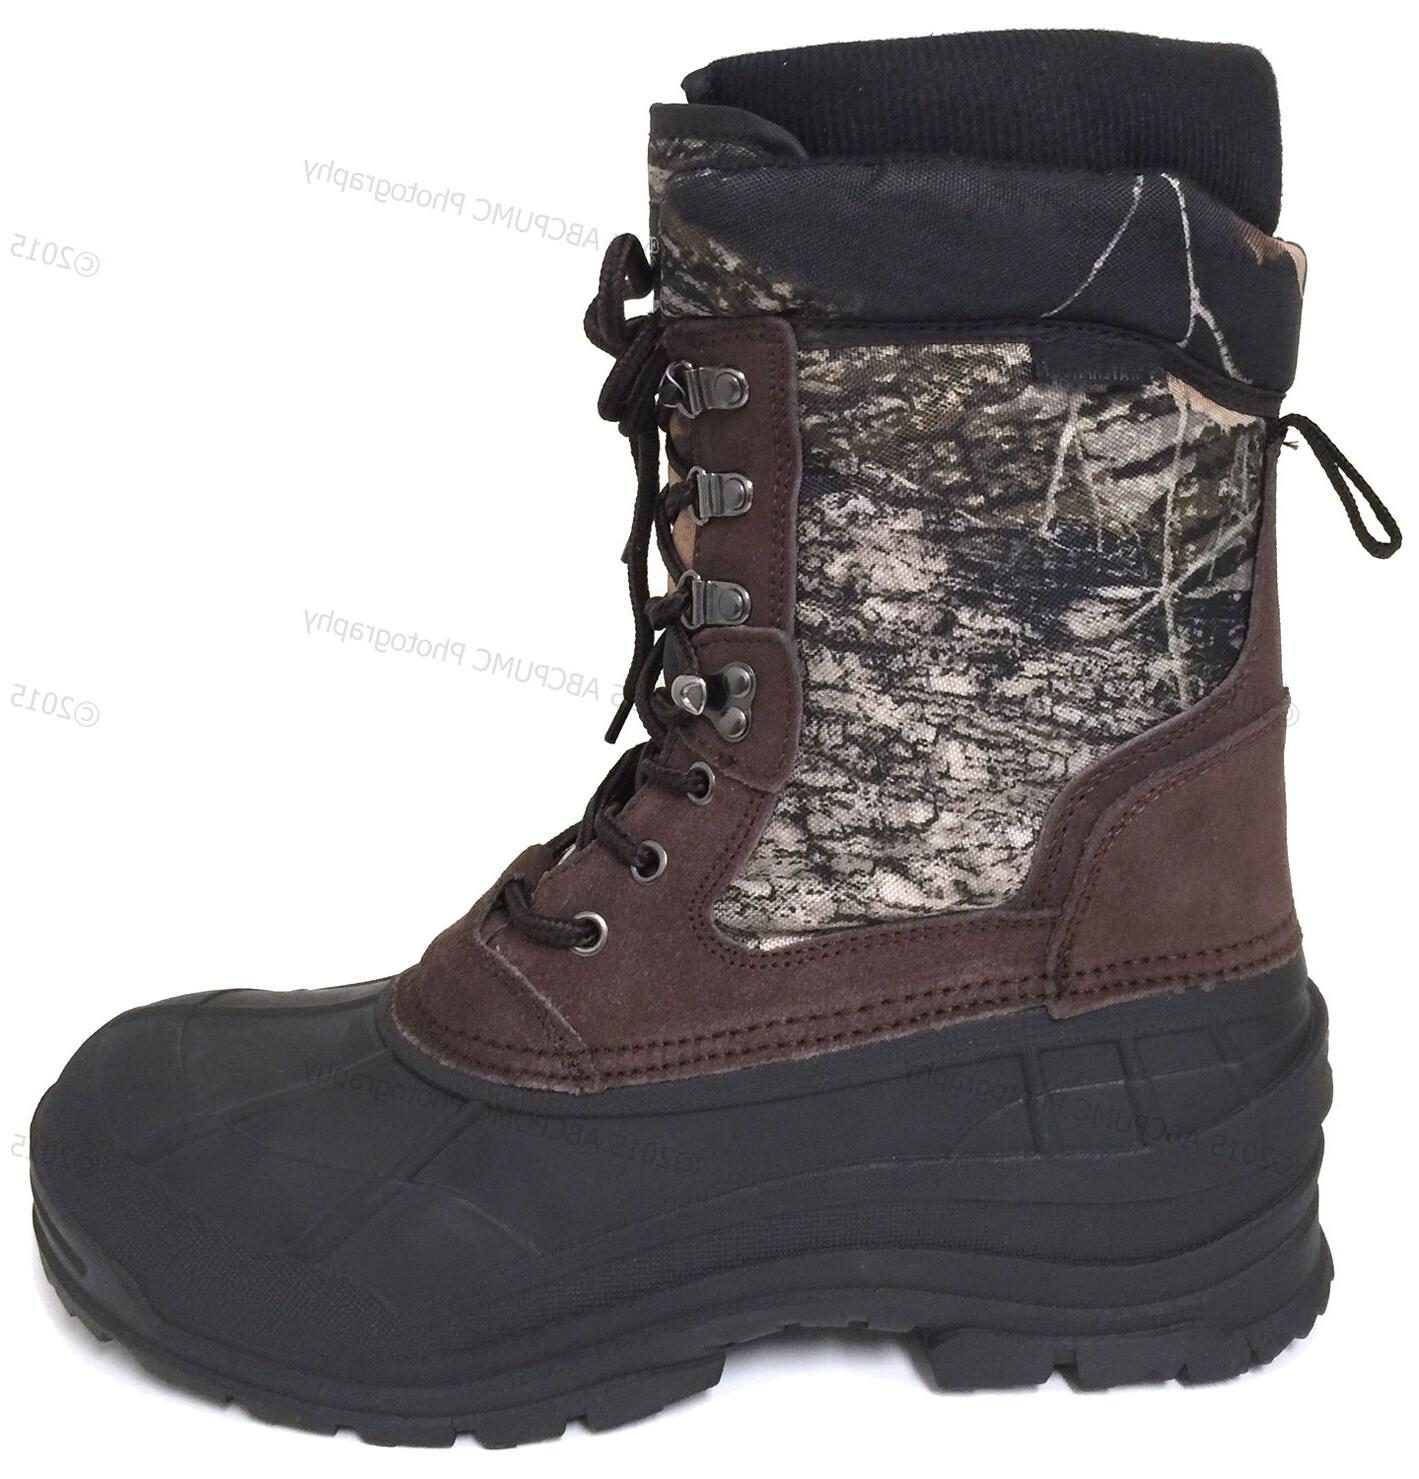 New Boots Waterproof Hunting